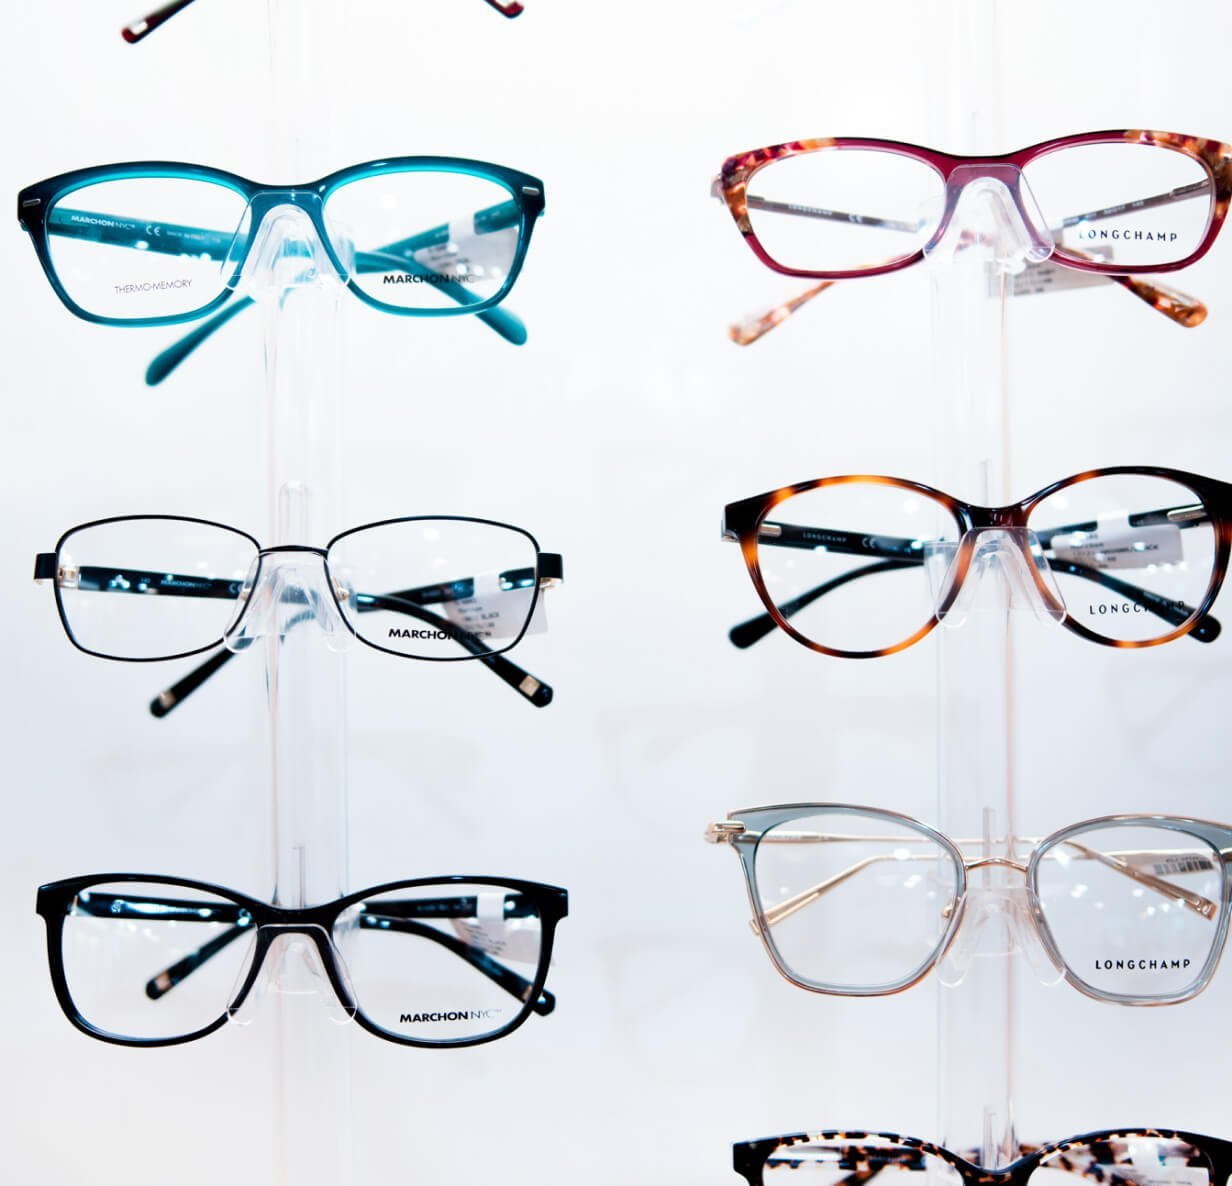 glasses wall